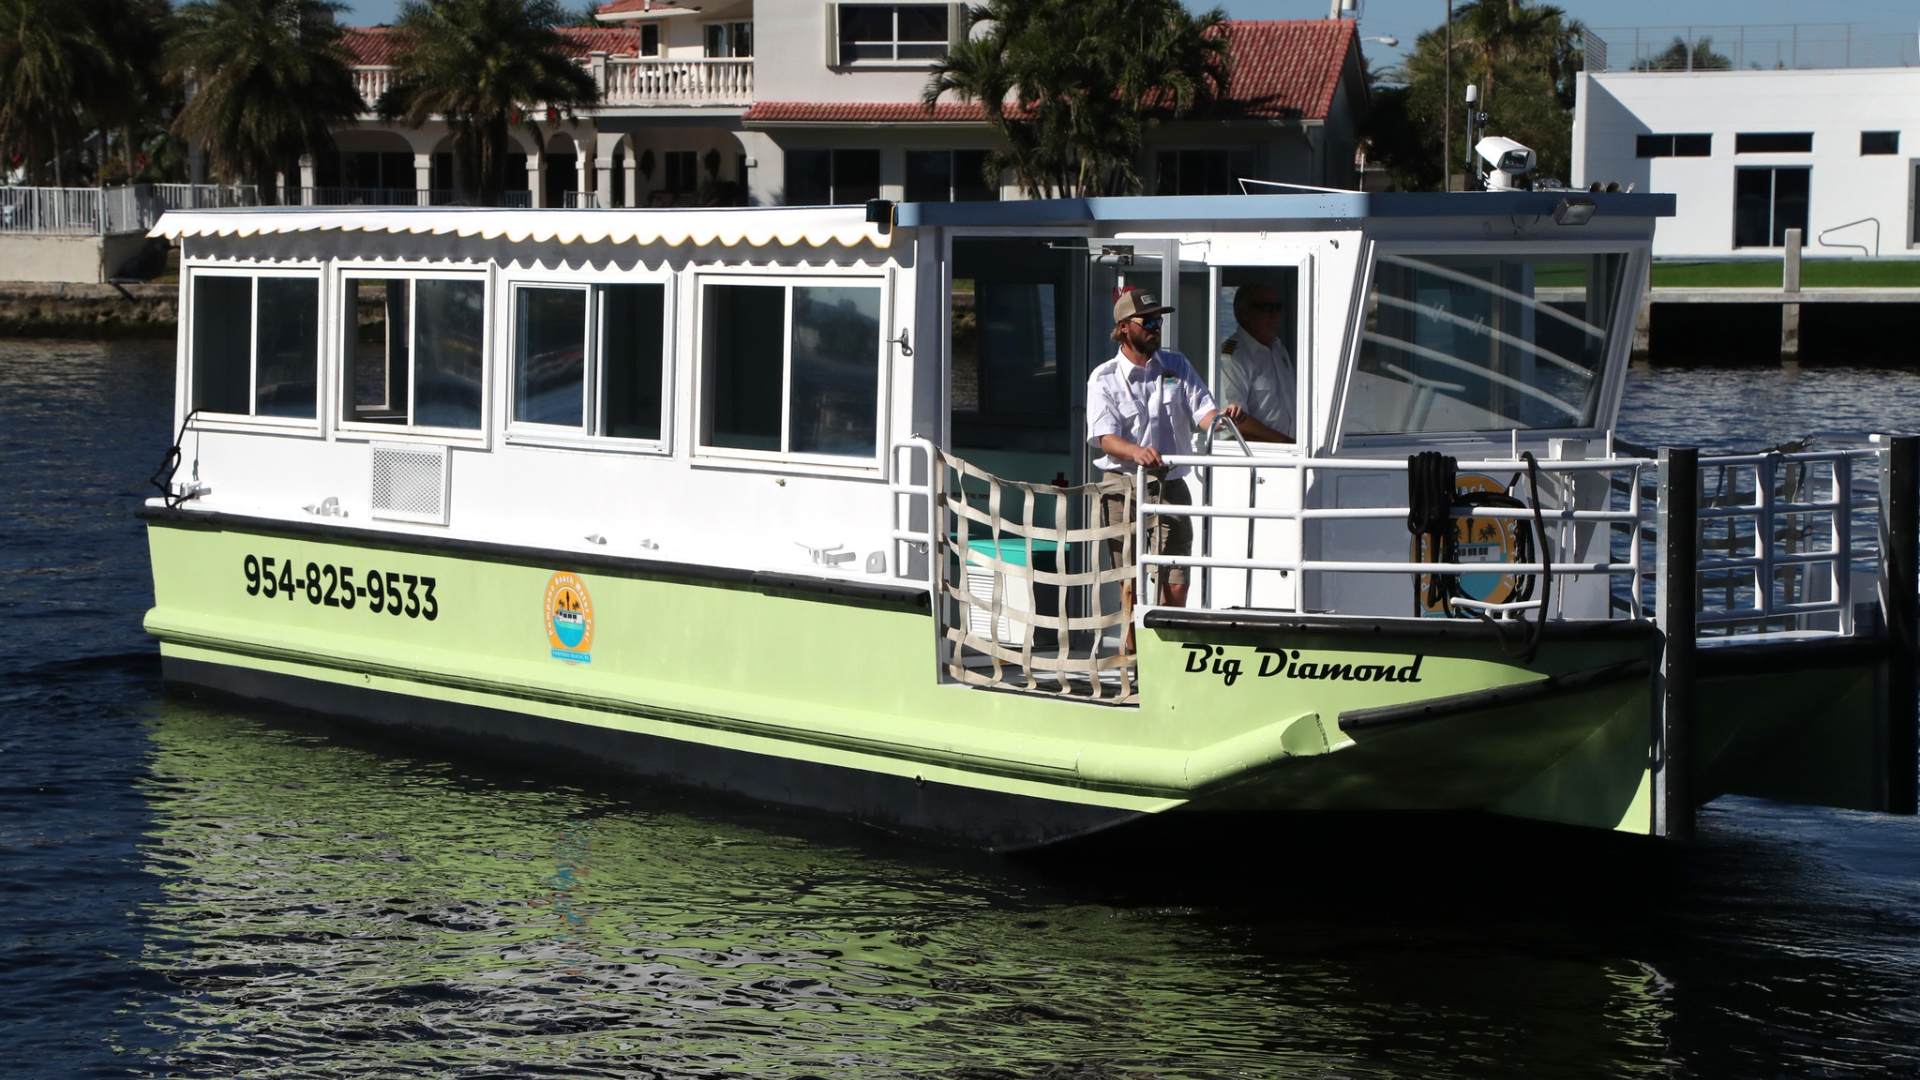 New water taxi service to start Saturday in Broward - South Florida